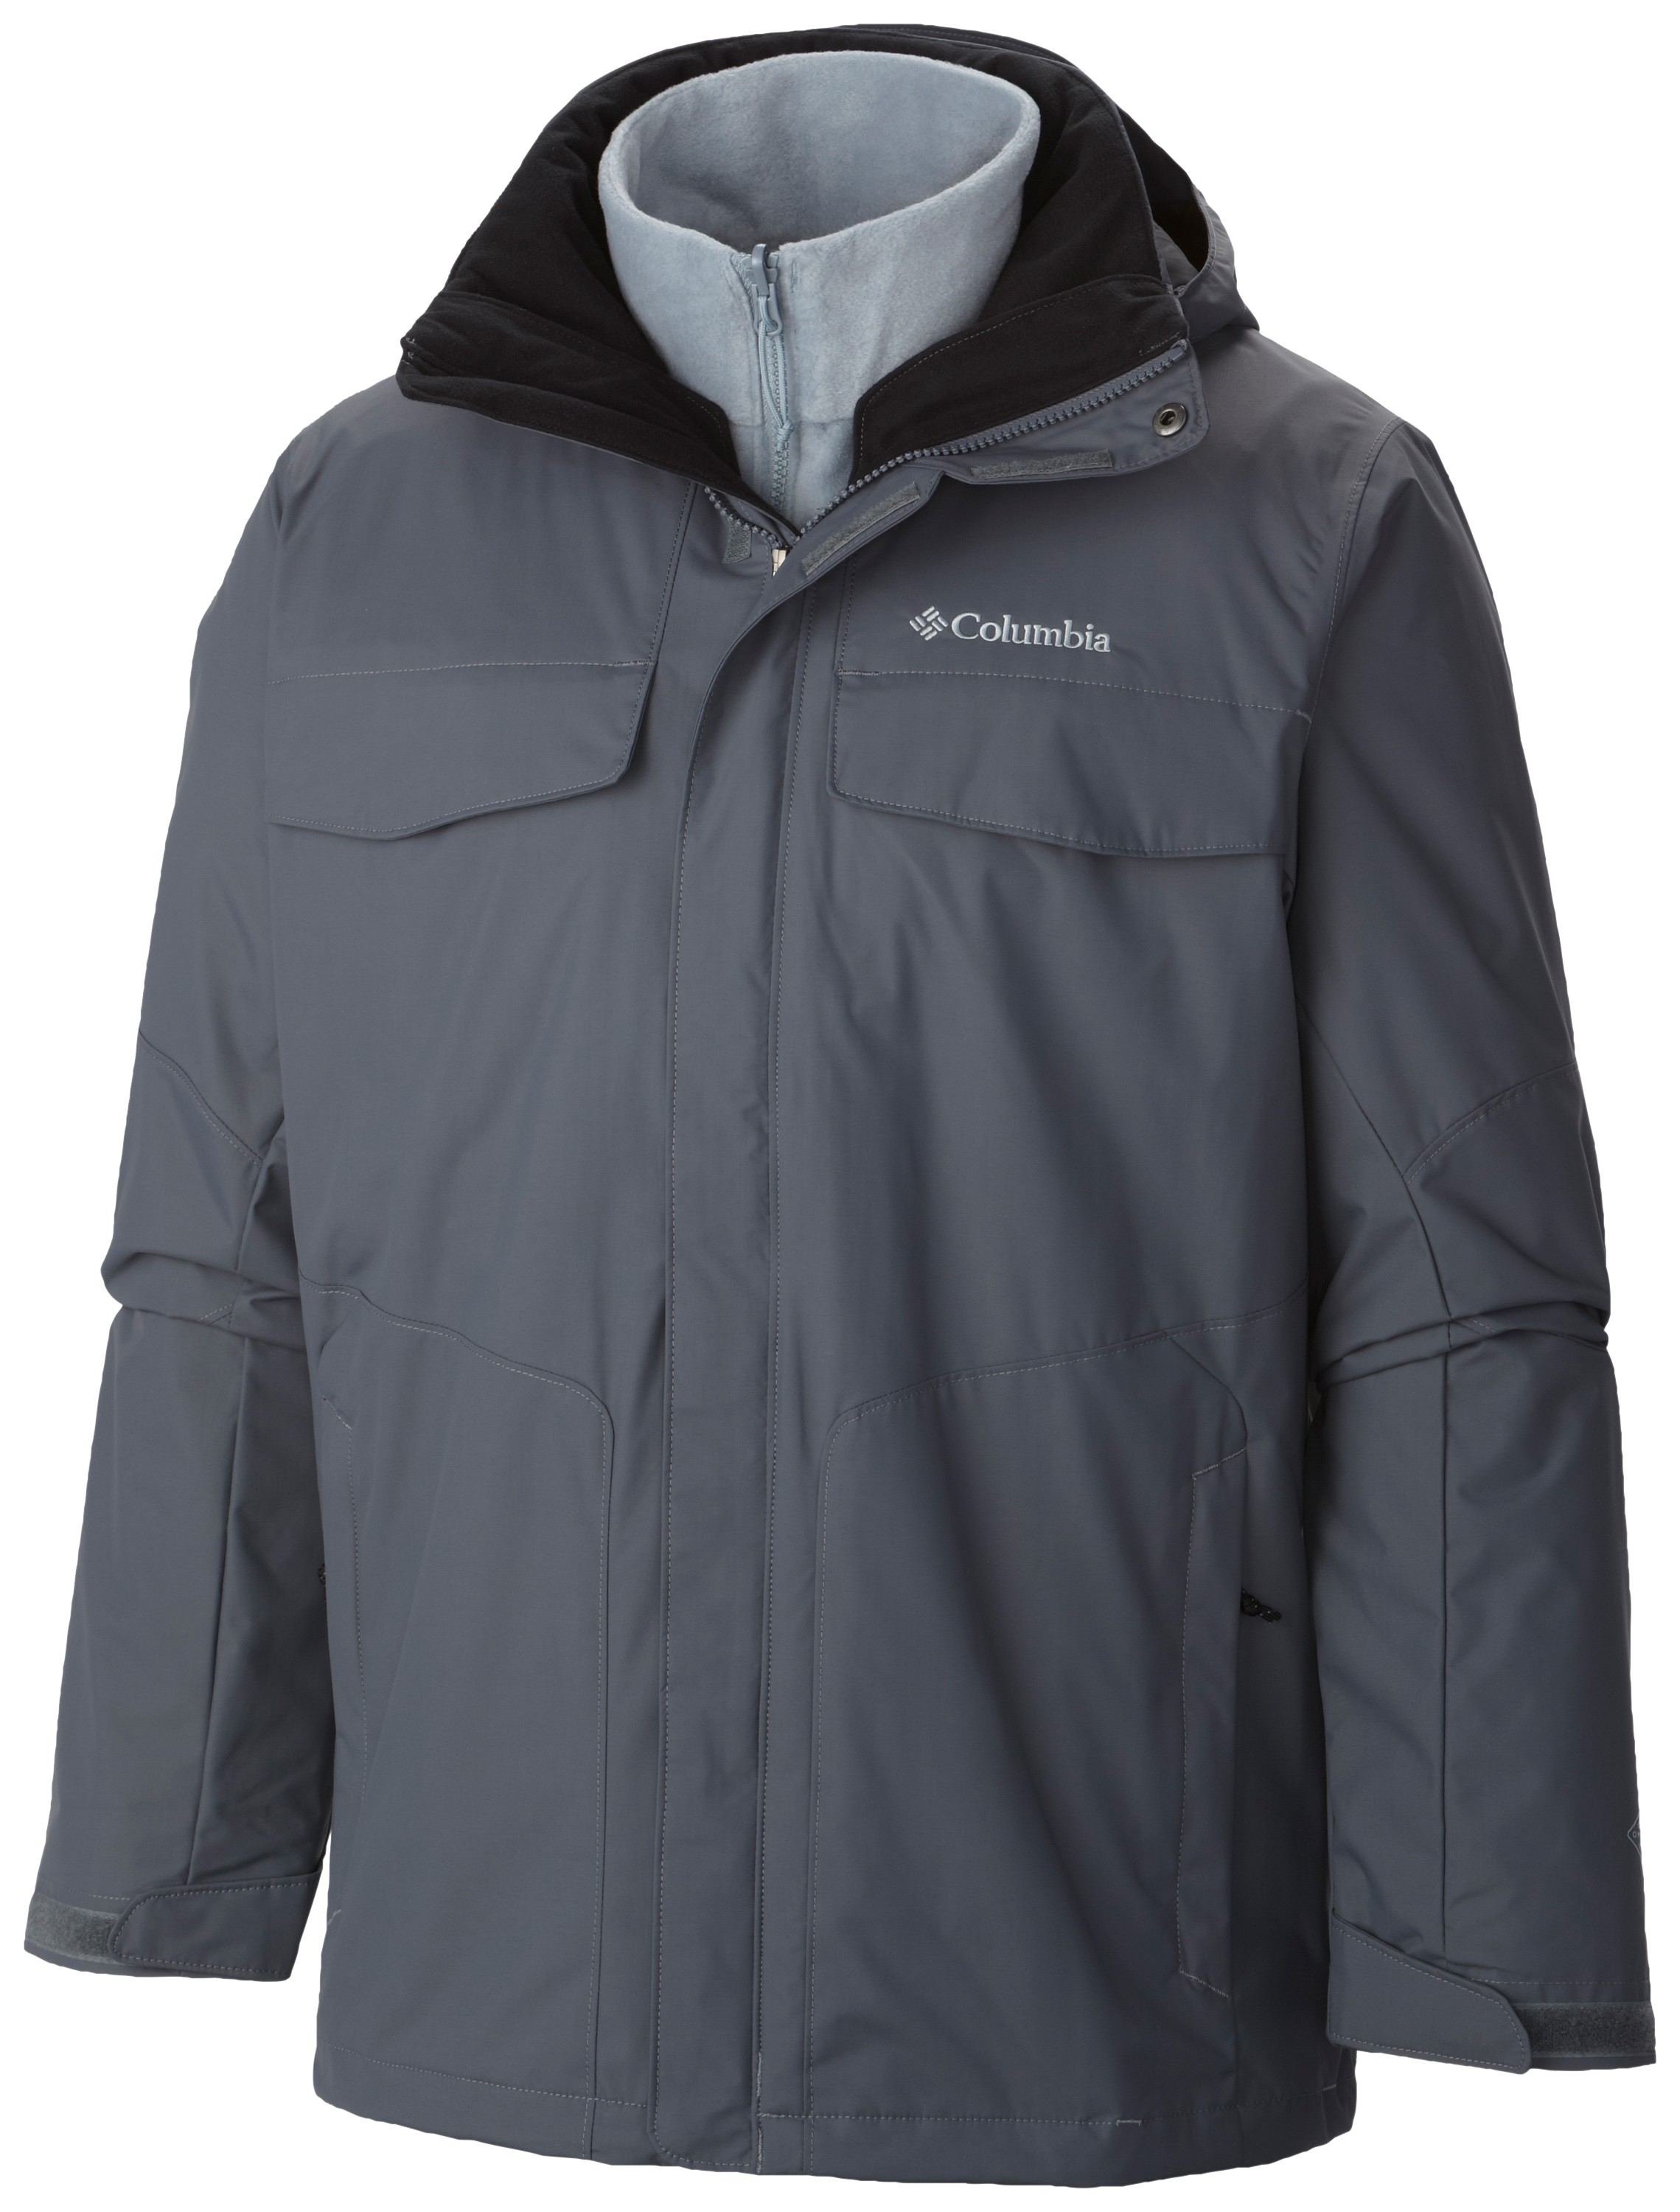 Columbia-Sportswear-Bugaboo-Interchange-Jacket-Big-Tall-Mens-3-in-1-Parka-Omni-Heat-Hyper.jpg